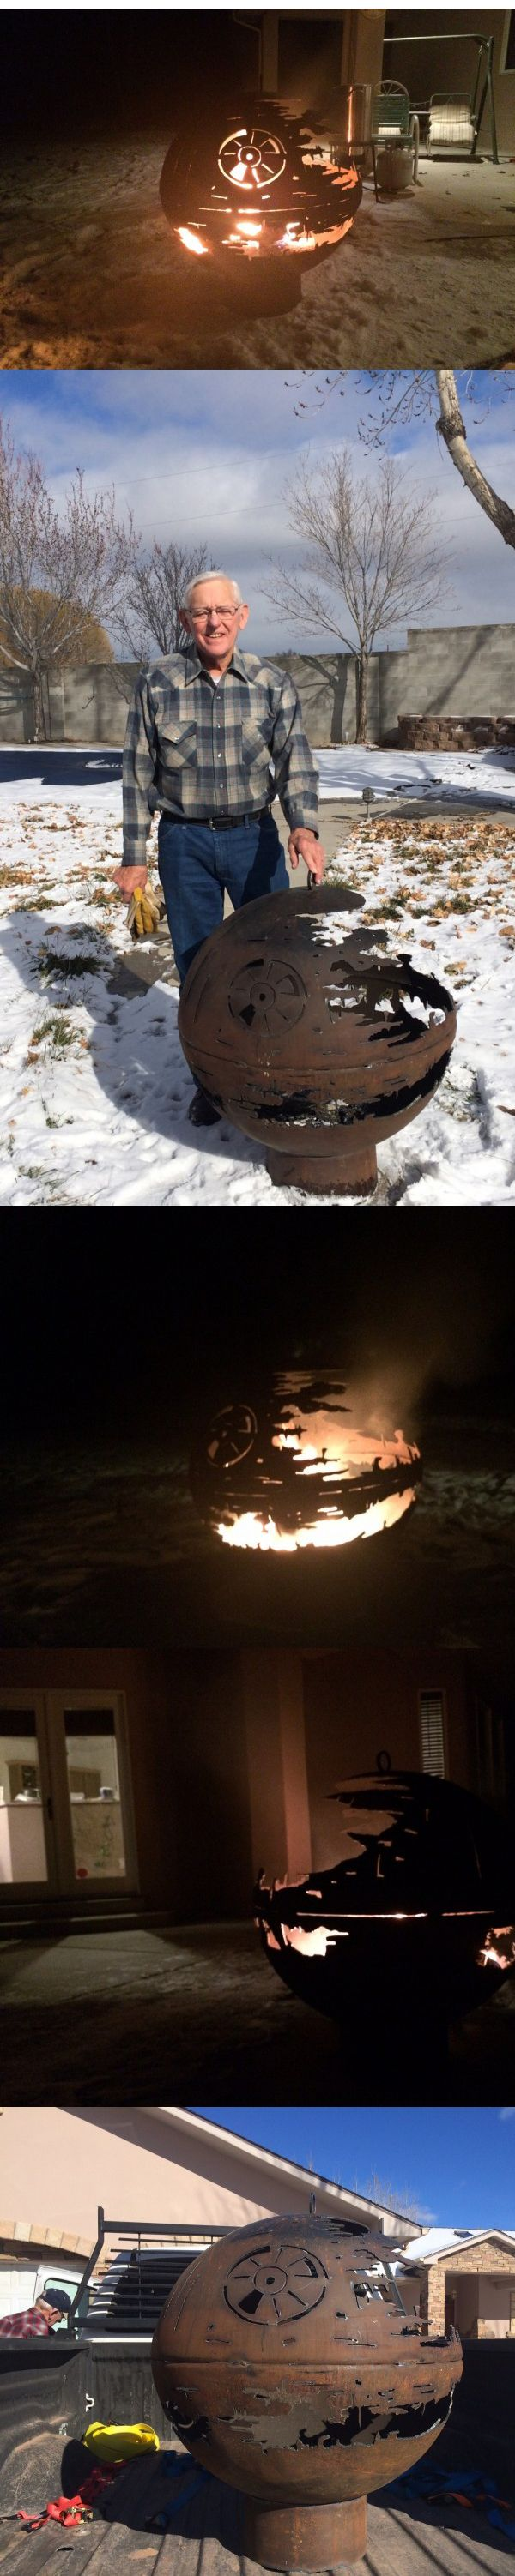 84-Year-Old Grandpa Welds a Death Star Fire Pit for Christmas That's no moon… it's a fire pit. Read more: http://www.visualnews.com/2015/01/02/84-year-old-grandpa-welds-death-star-fire-pit-christmas/#BvI0ELXp0RJWWxiP.99